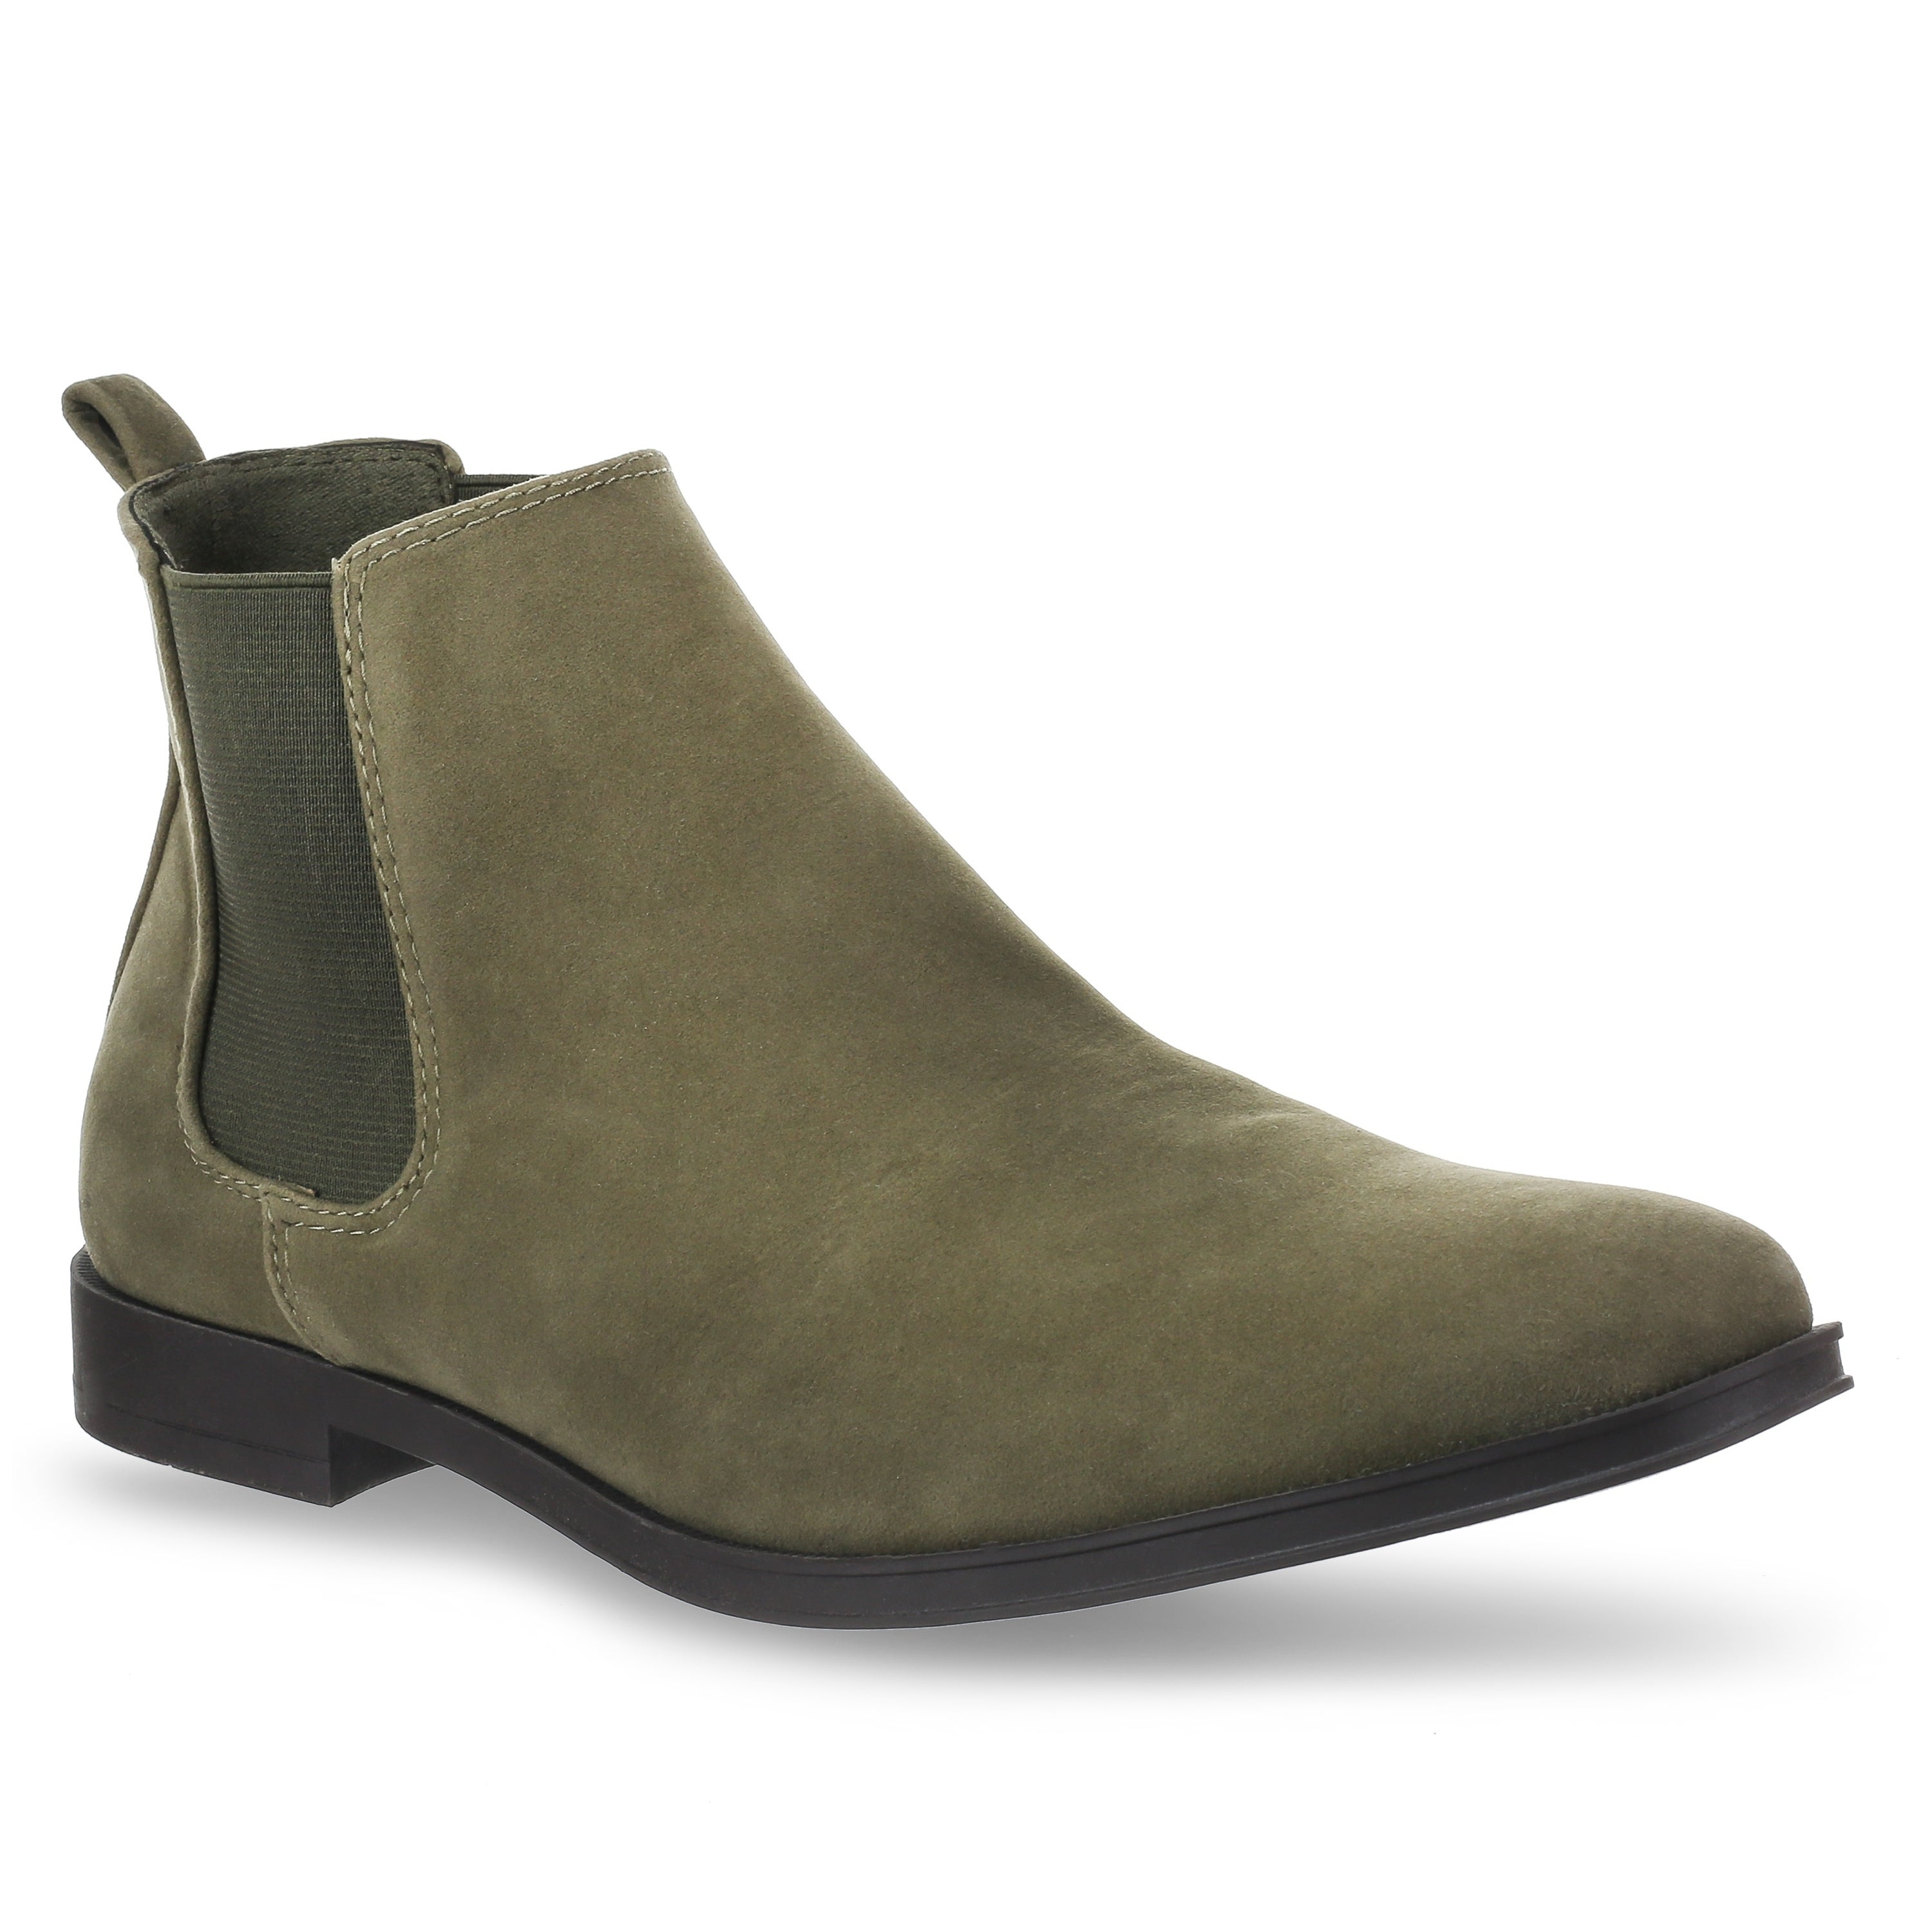 8a9aafb0323d Shop Xray Men s Chelsea Boot - On Sale - Free Shipping On Orders ...